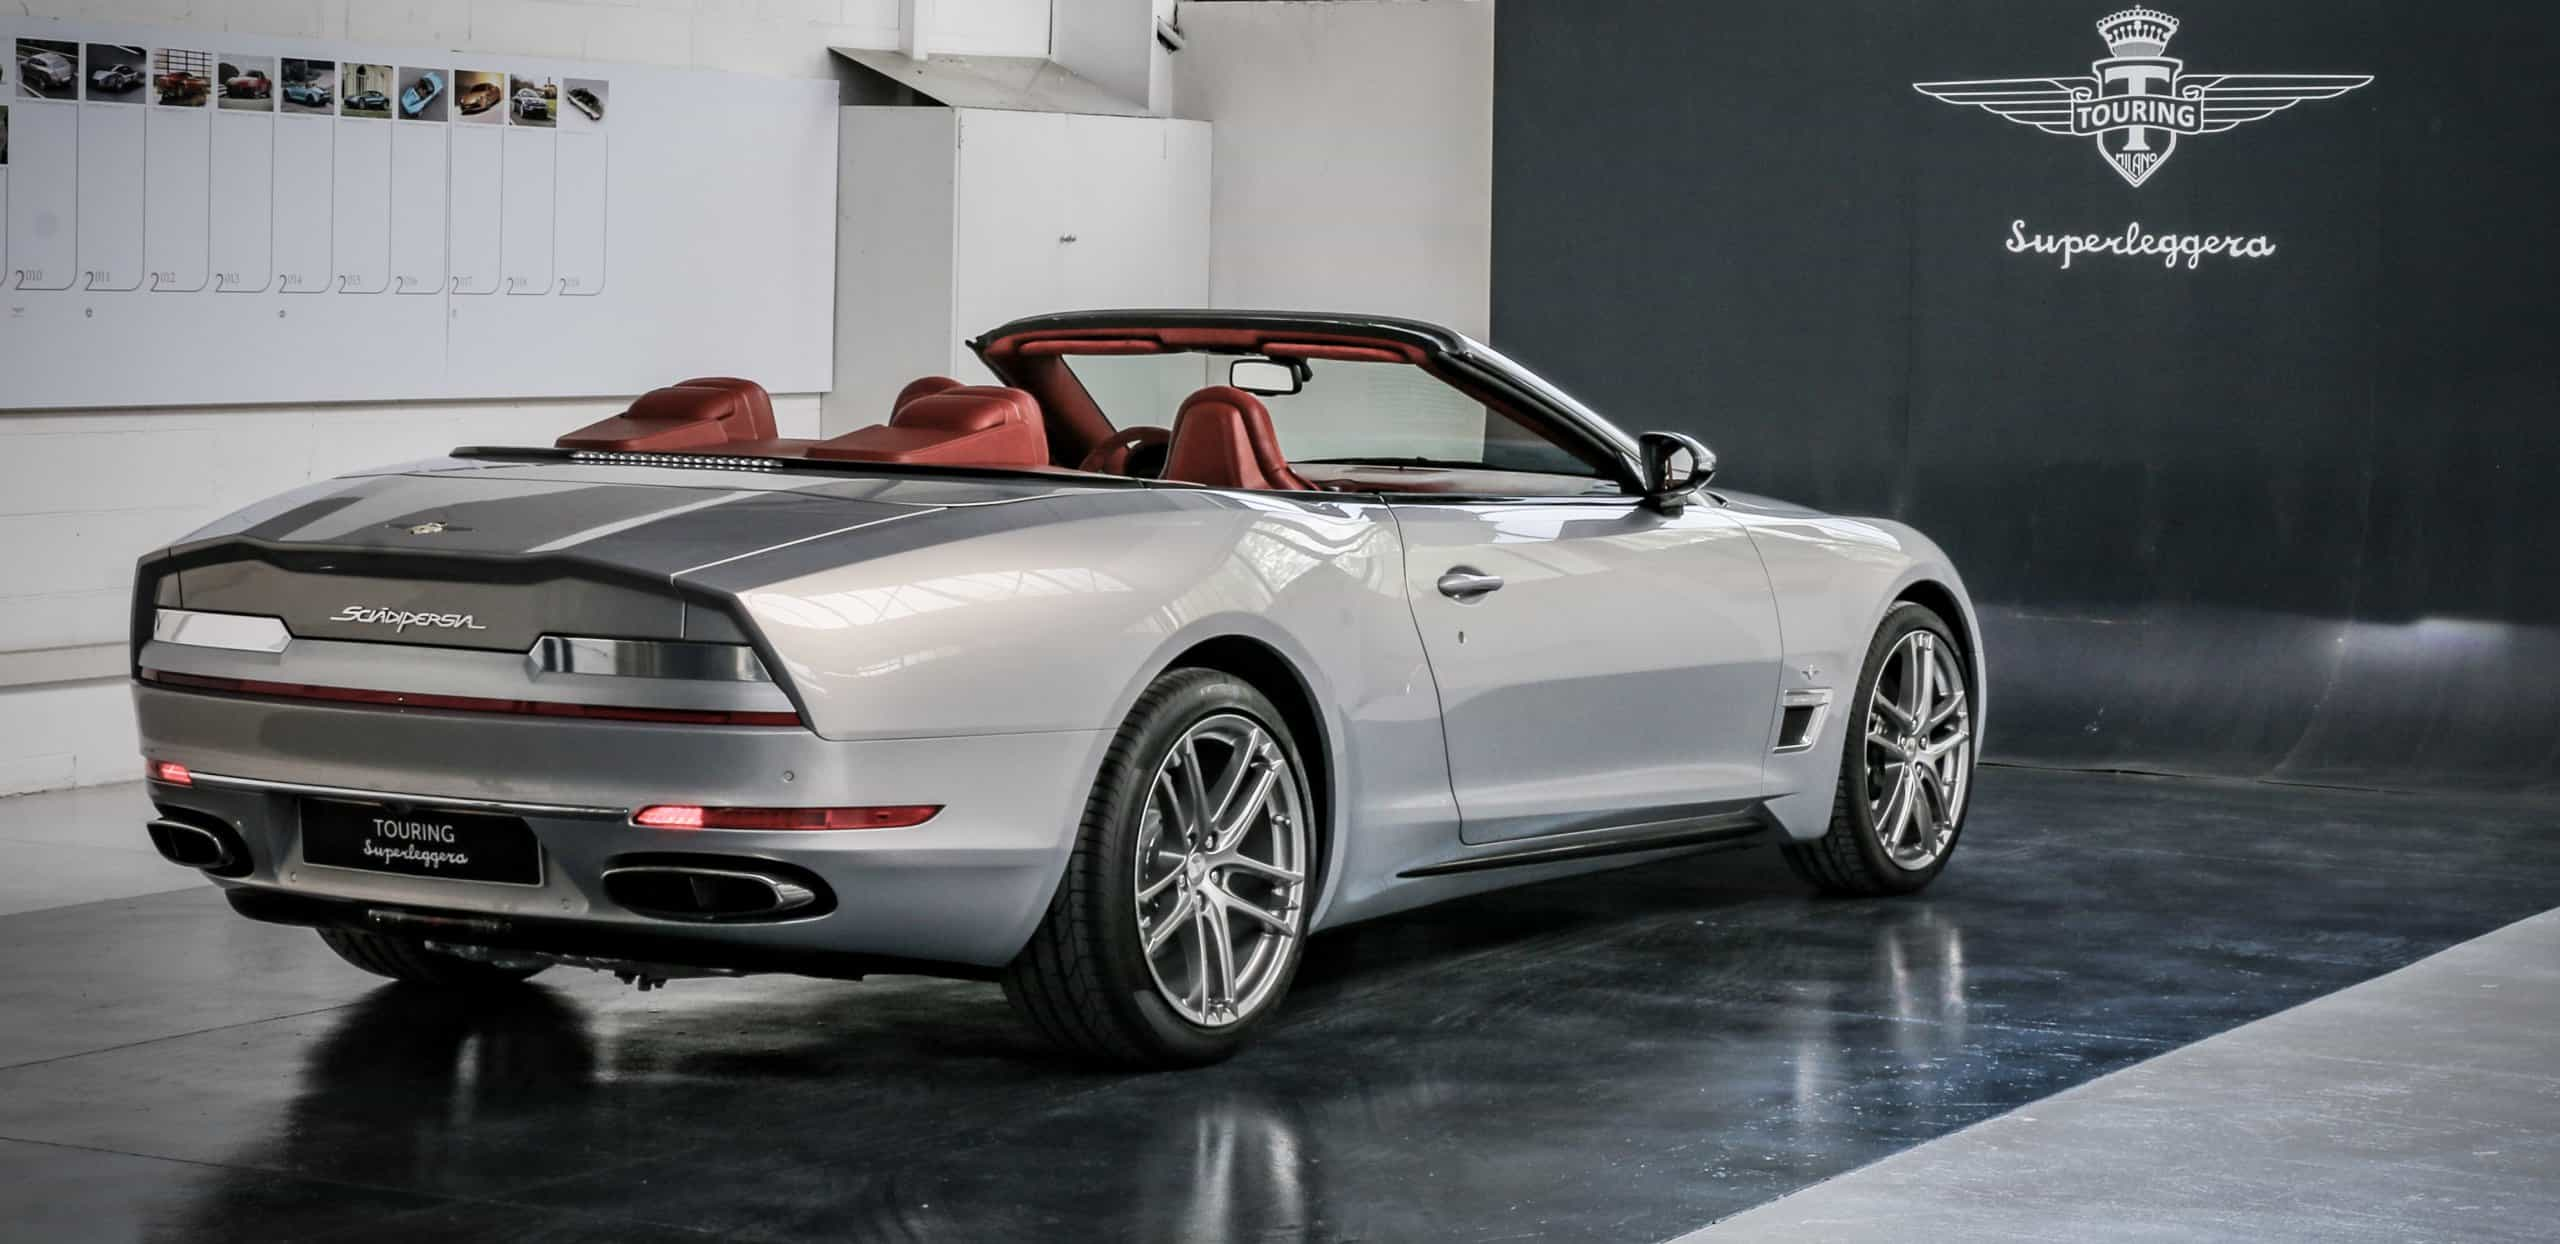 Touring Superleggera, Touring to offer U.S. its limited-production coupe, convertible, ClassicCars.com Journal